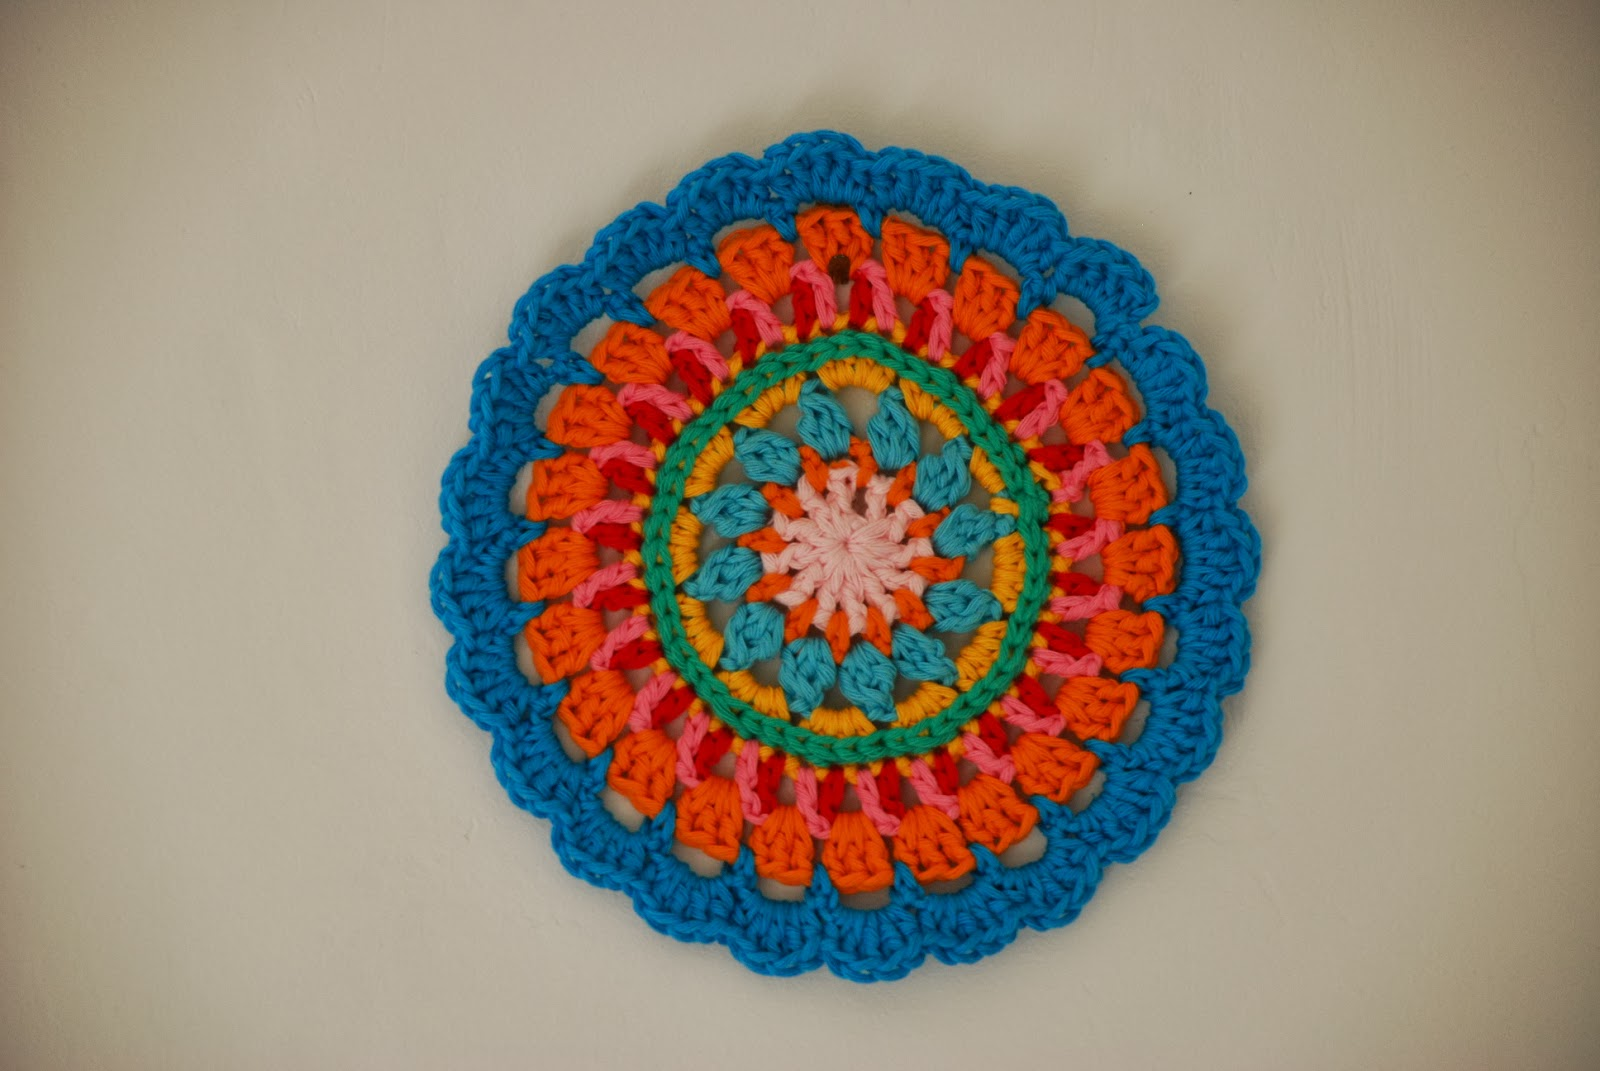 image of crochet mandala